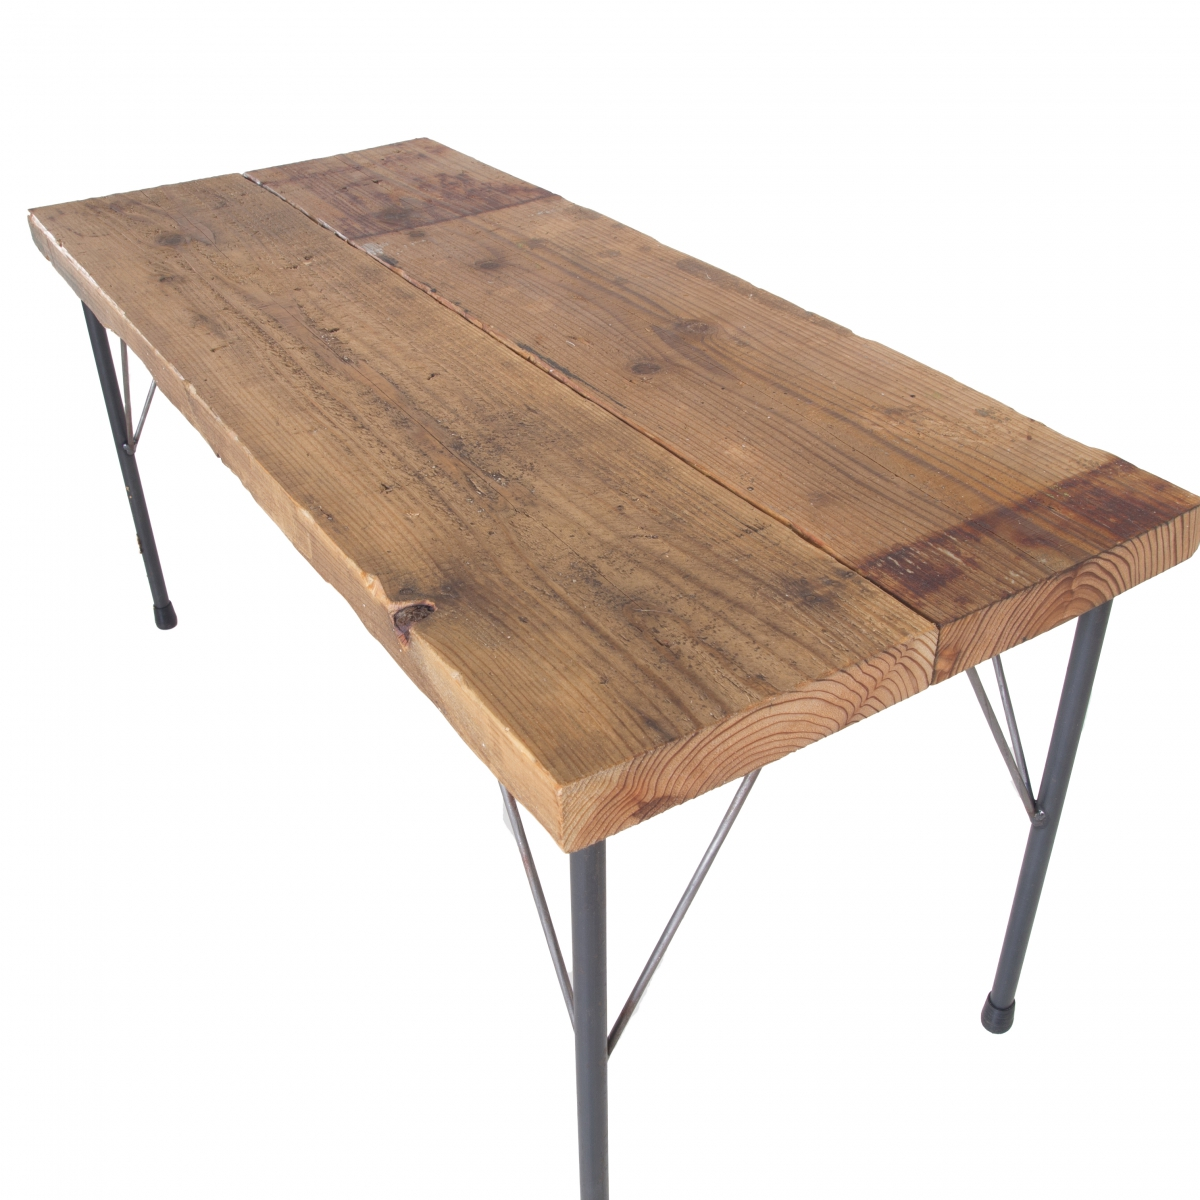 Low table / Iron leg & Old tree